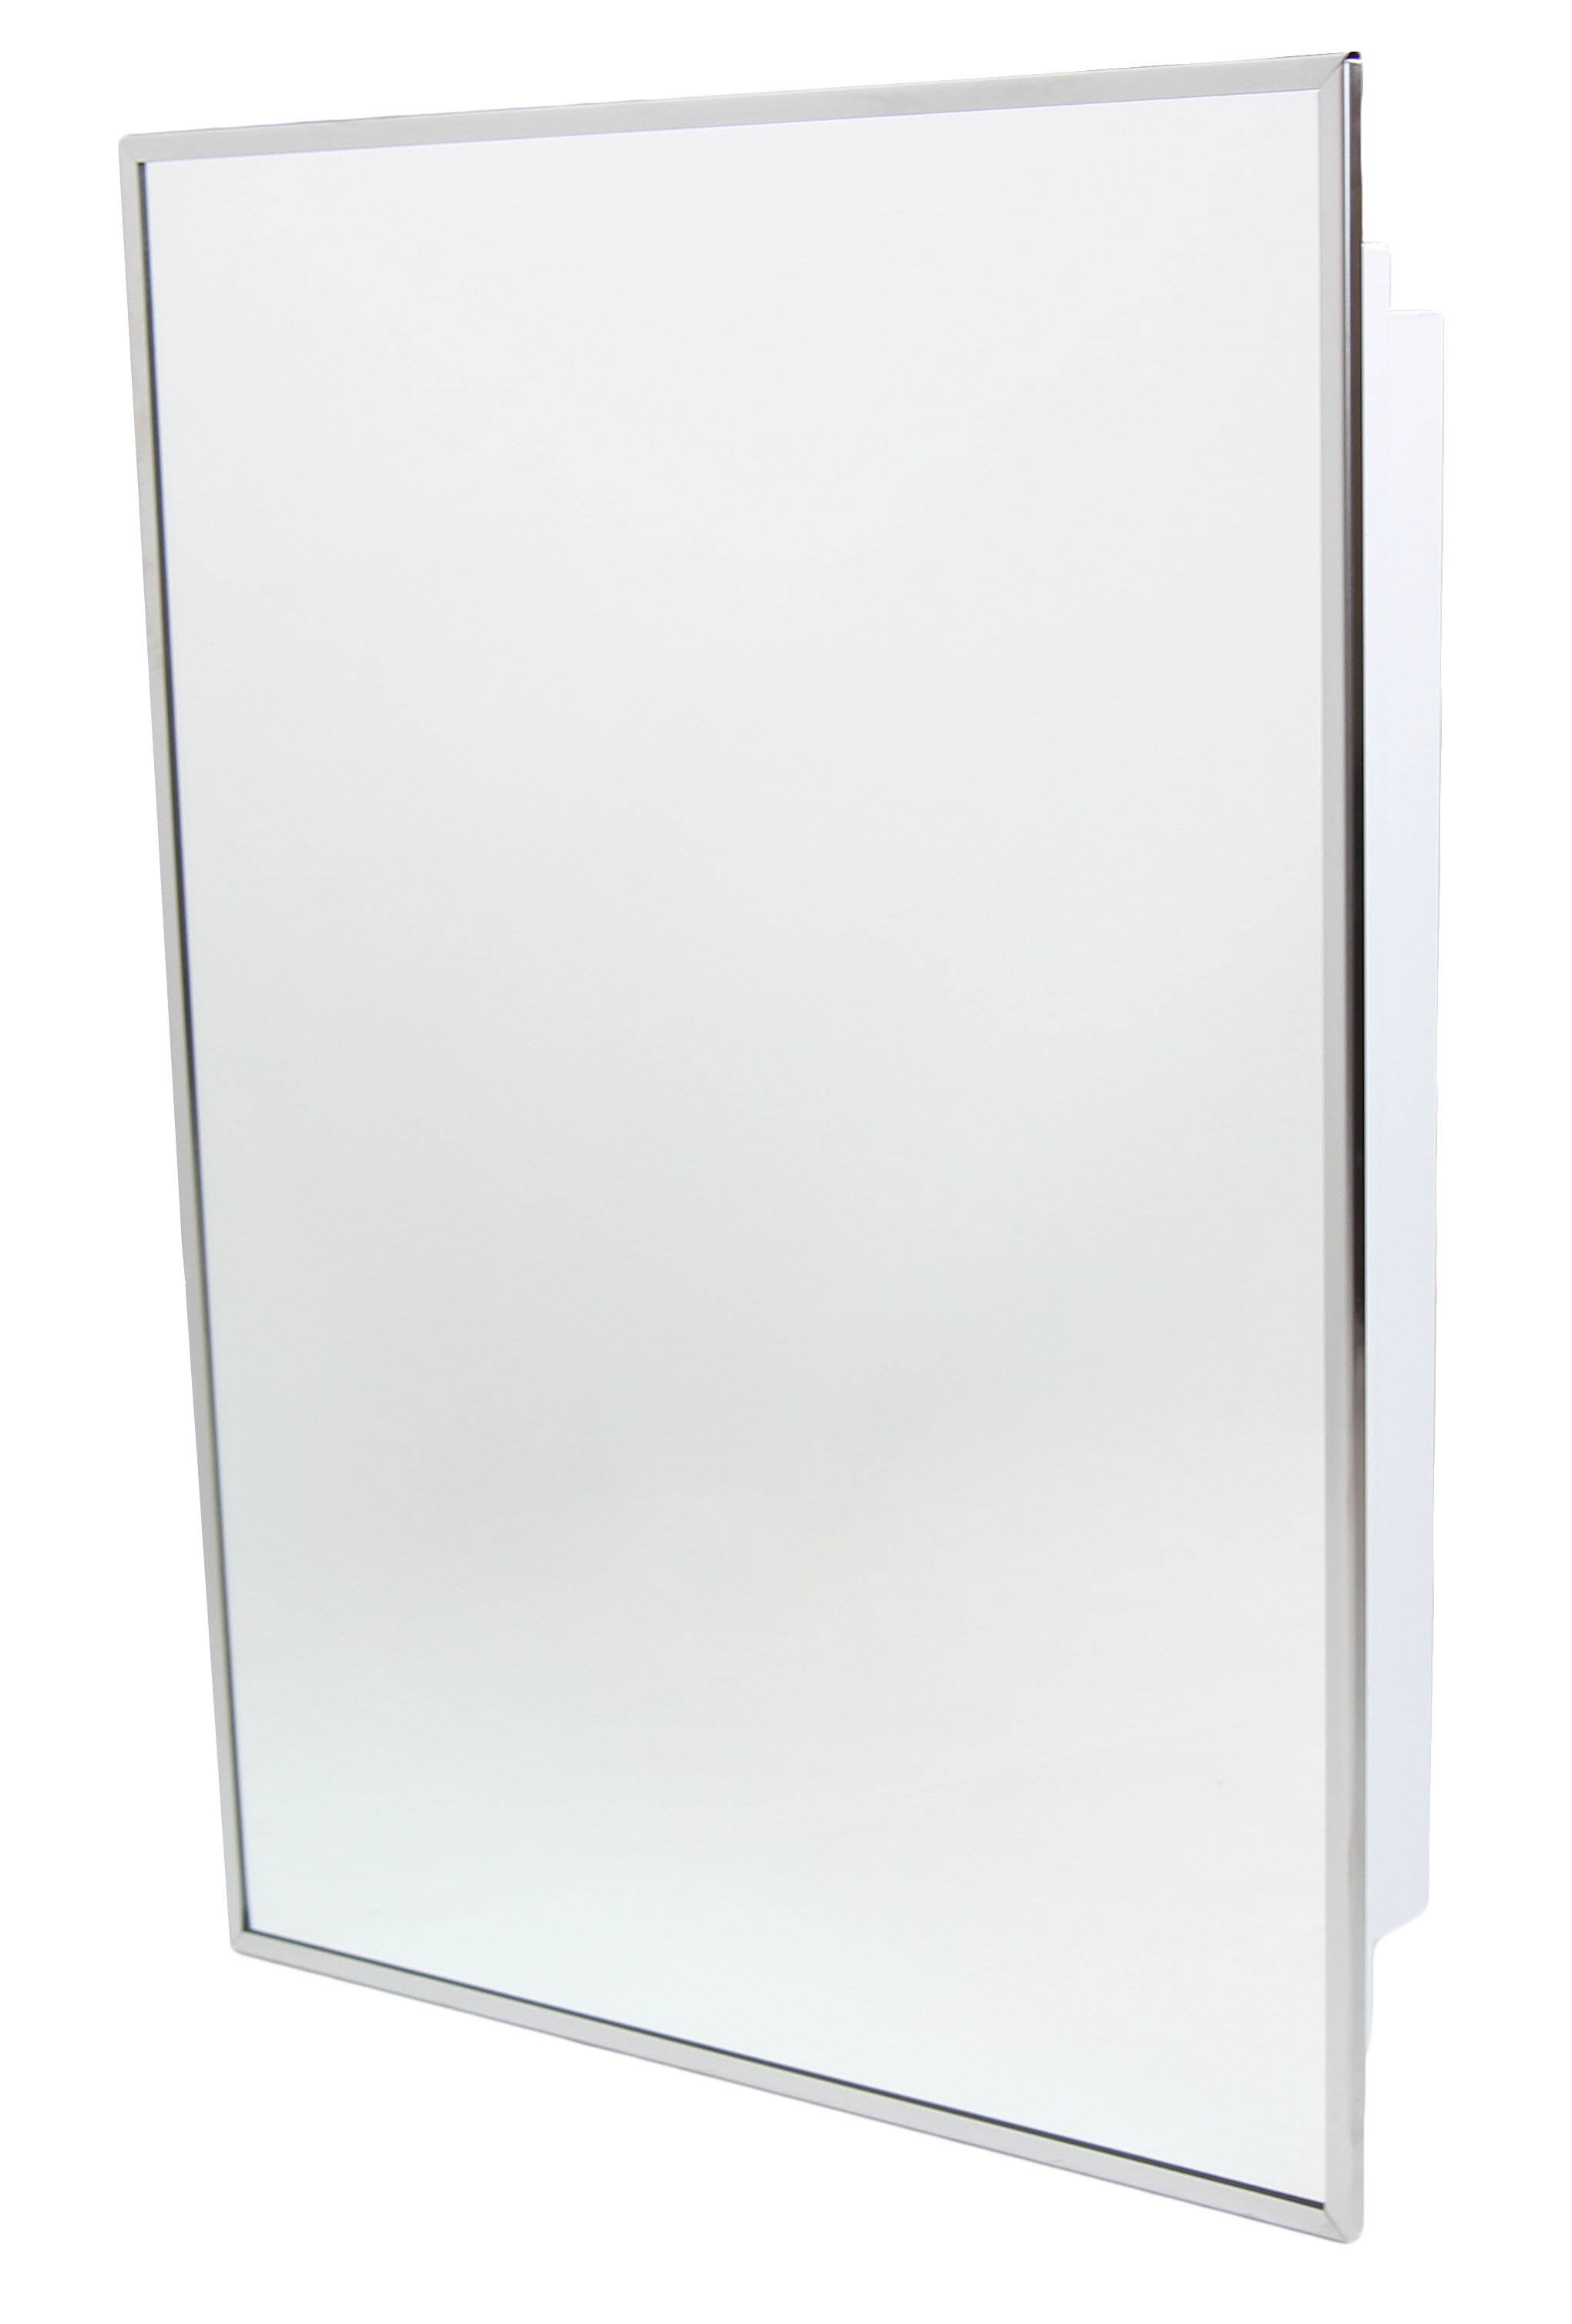 Inspirational Surface Mount Medicine Cabinet